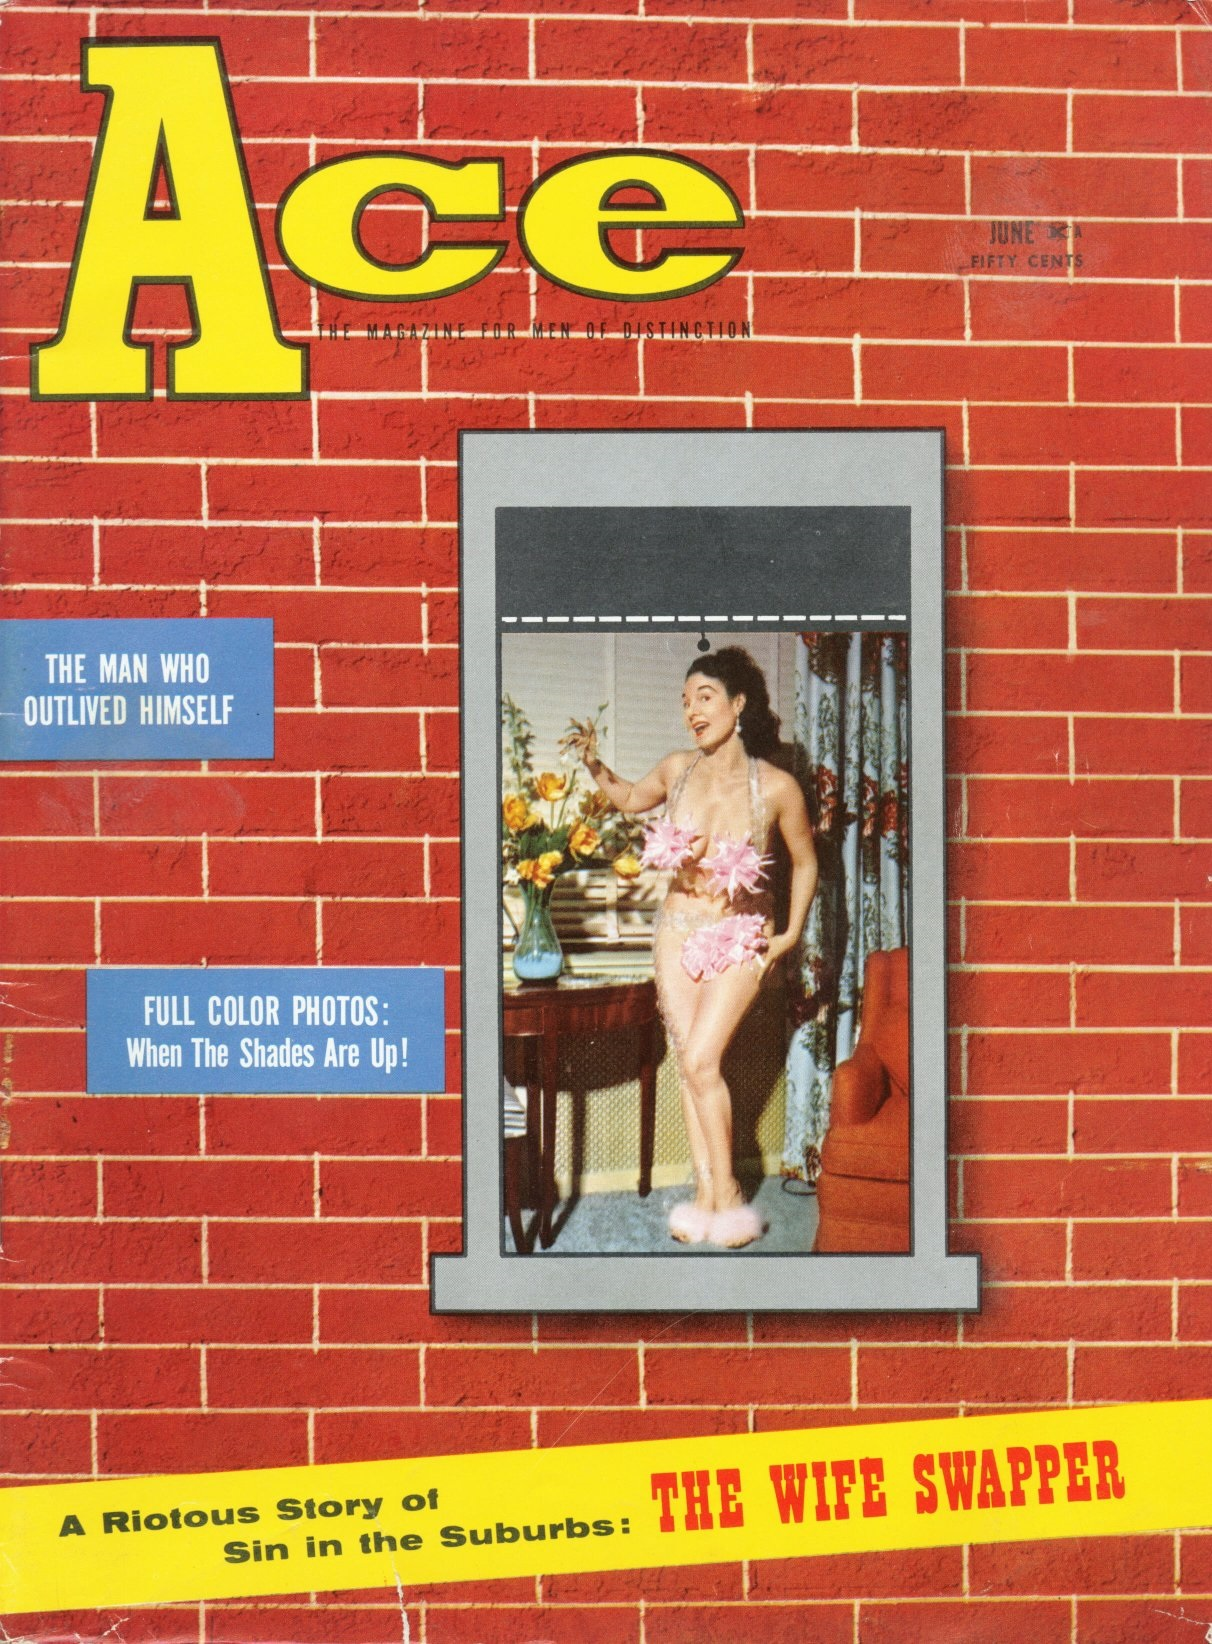 Ace Magazine Vol 03 No 01 - 1959 June